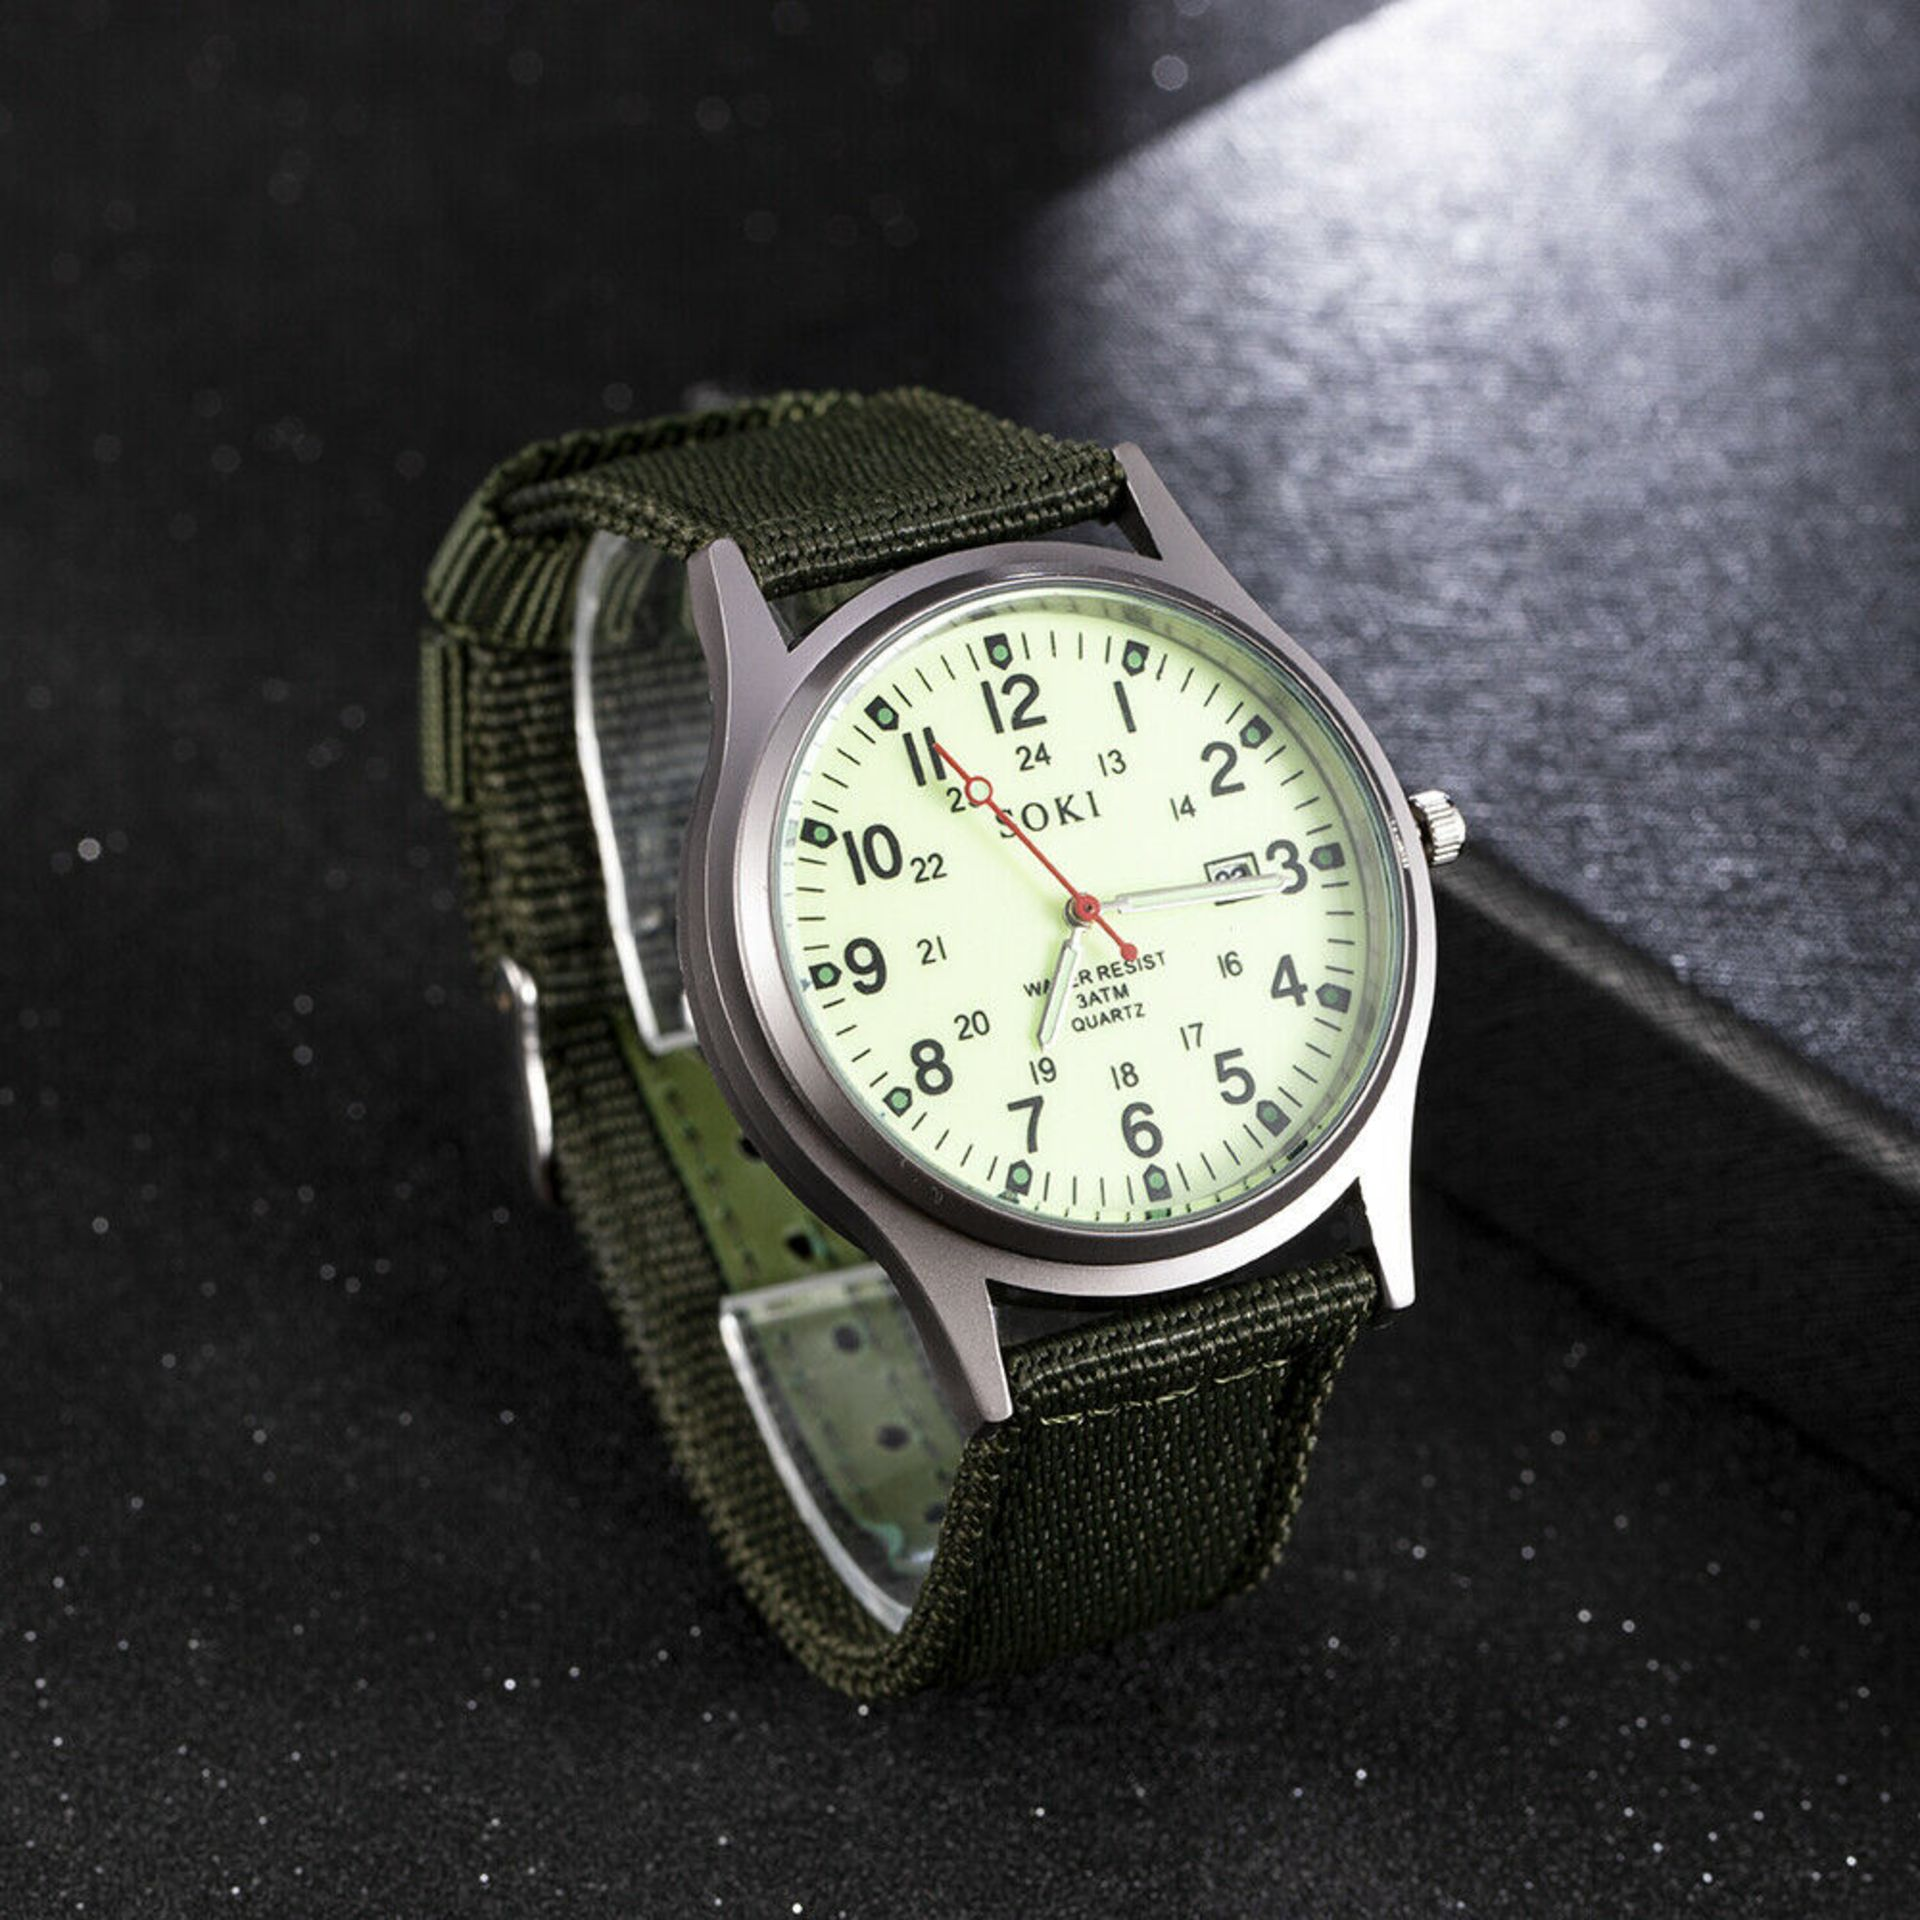 NEW & UNUSED SOKI FASHION QUARTZ LUMINOUS MILITARY INFANTRY ARMY STYLE MENS WRIST WATCH *PLUS VAT* - Image 3 of 3